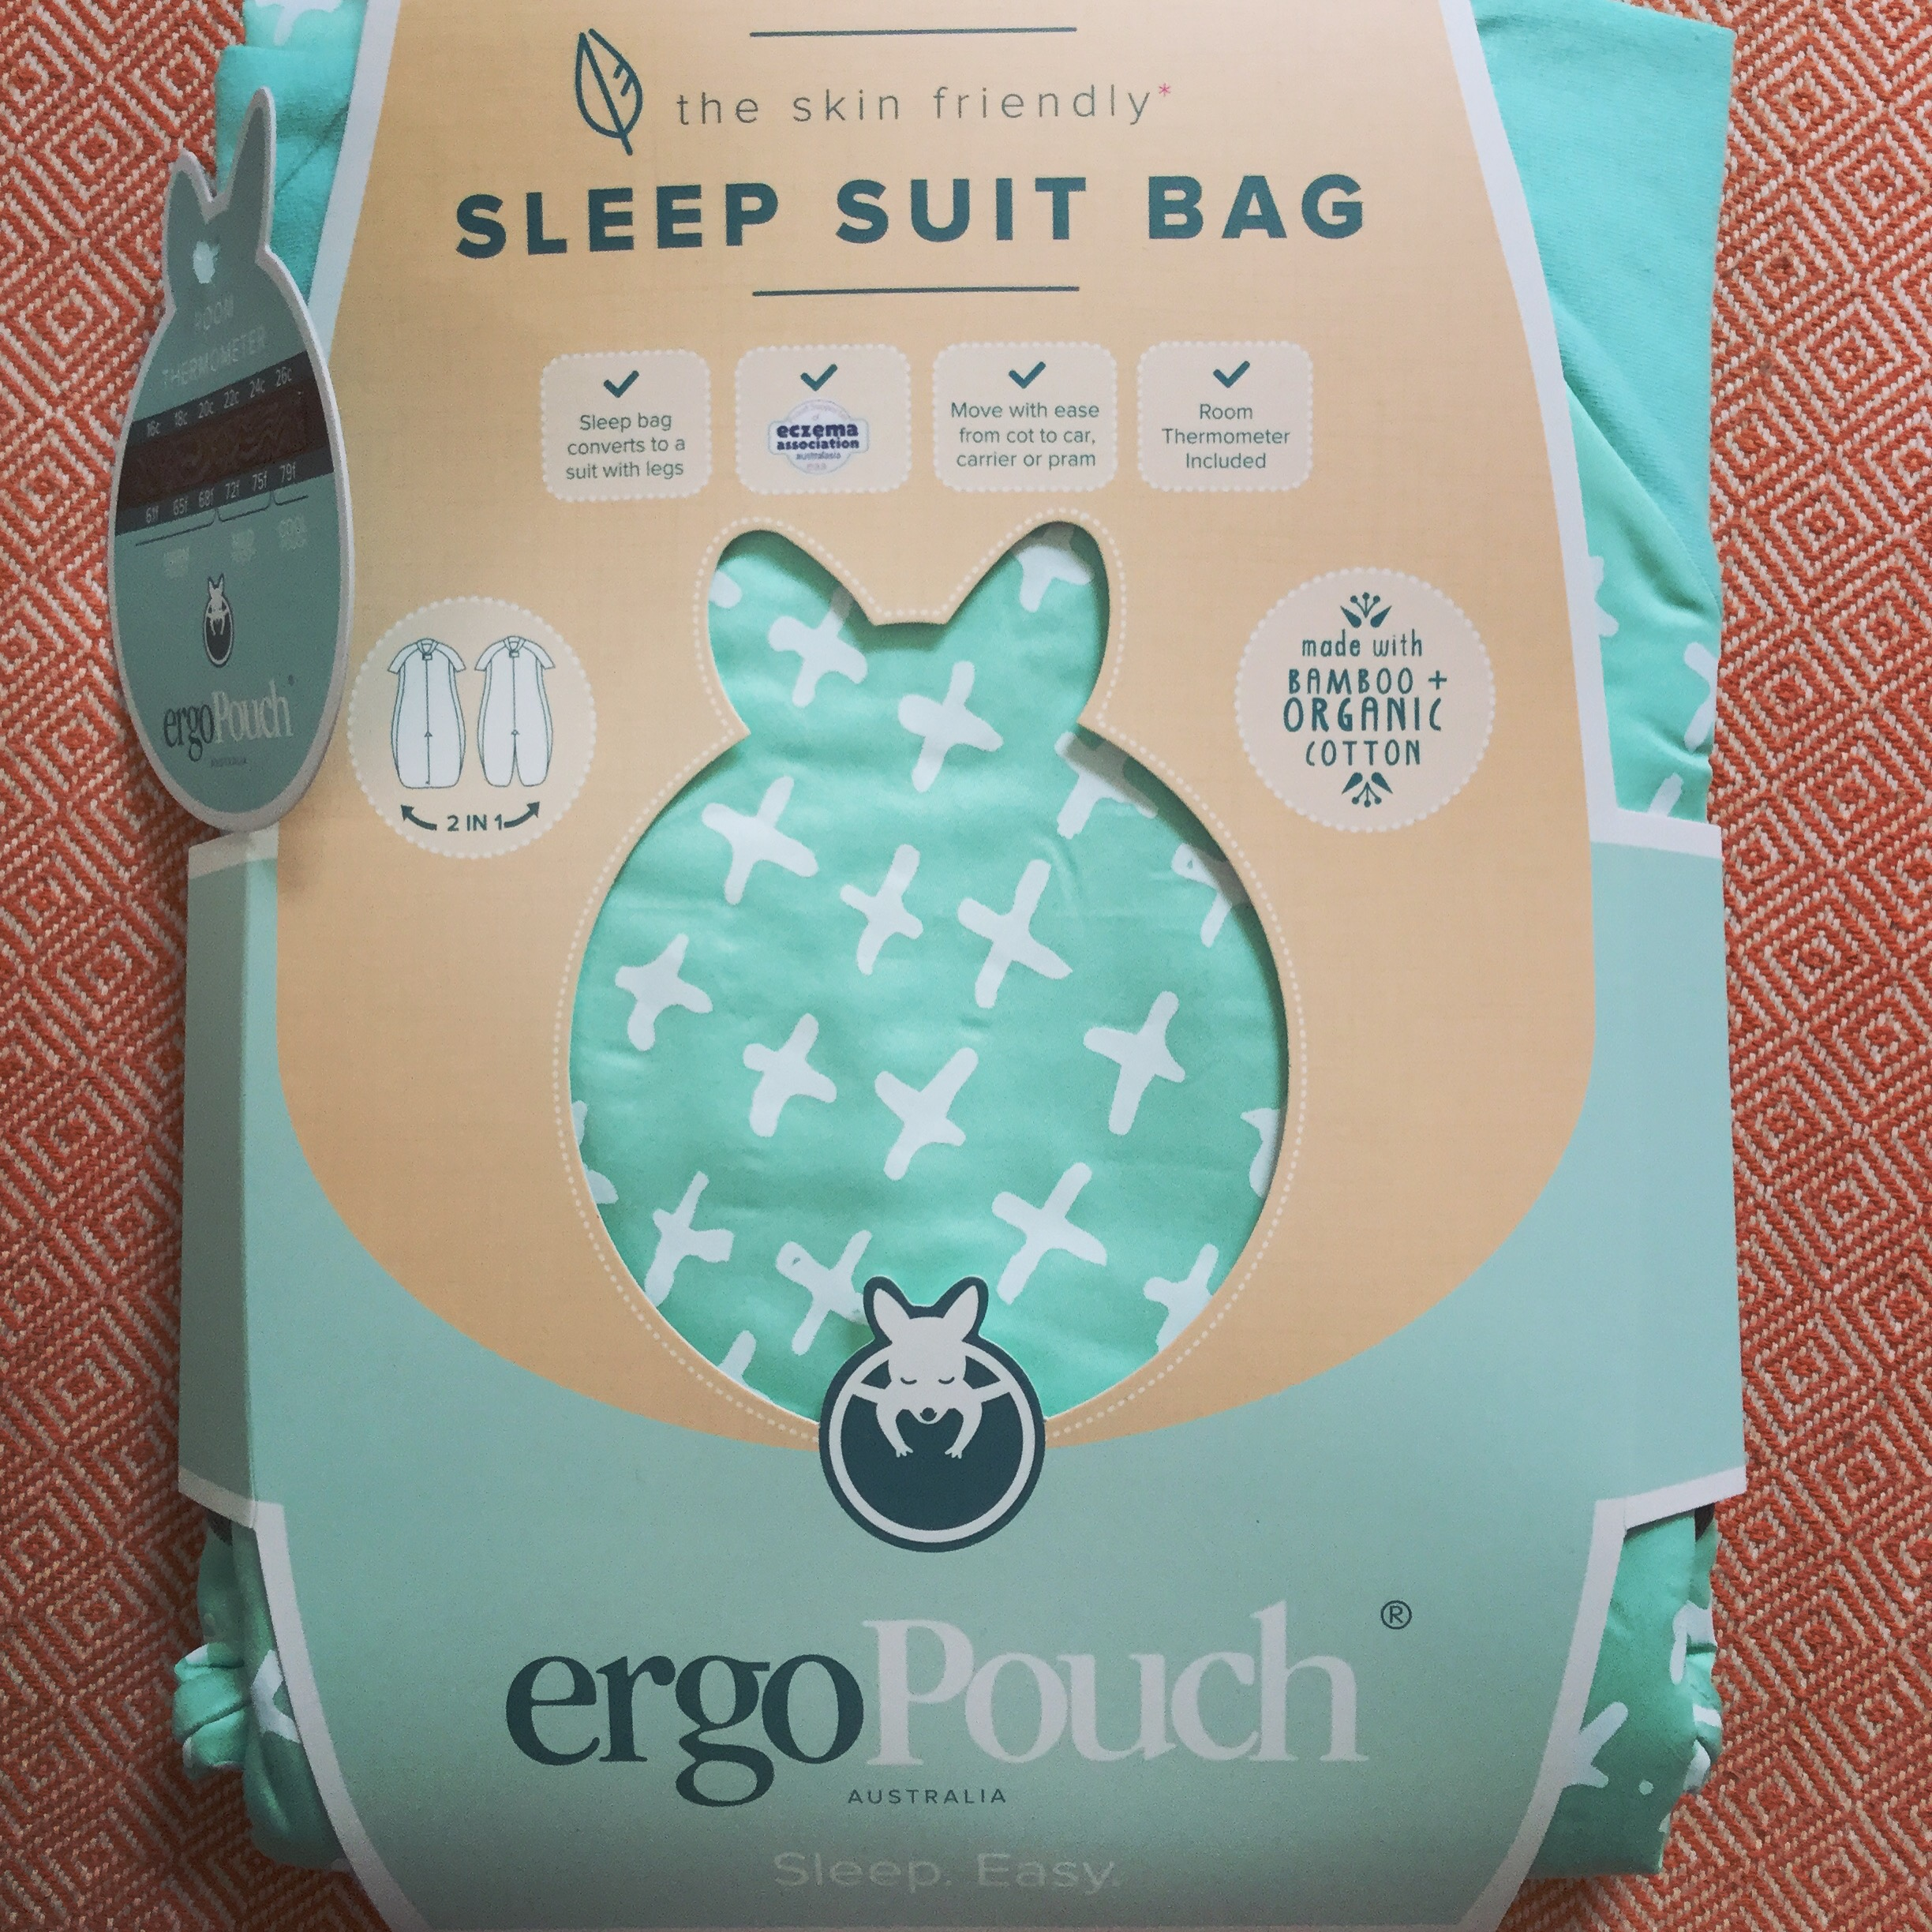 Ergopouch the 2-in-1 Sleepsuit and Bag - Organic, Aussie Baby Sleepsuit. Bamboo and cotton summer tog suit reviewed by Frankie and the Lamb